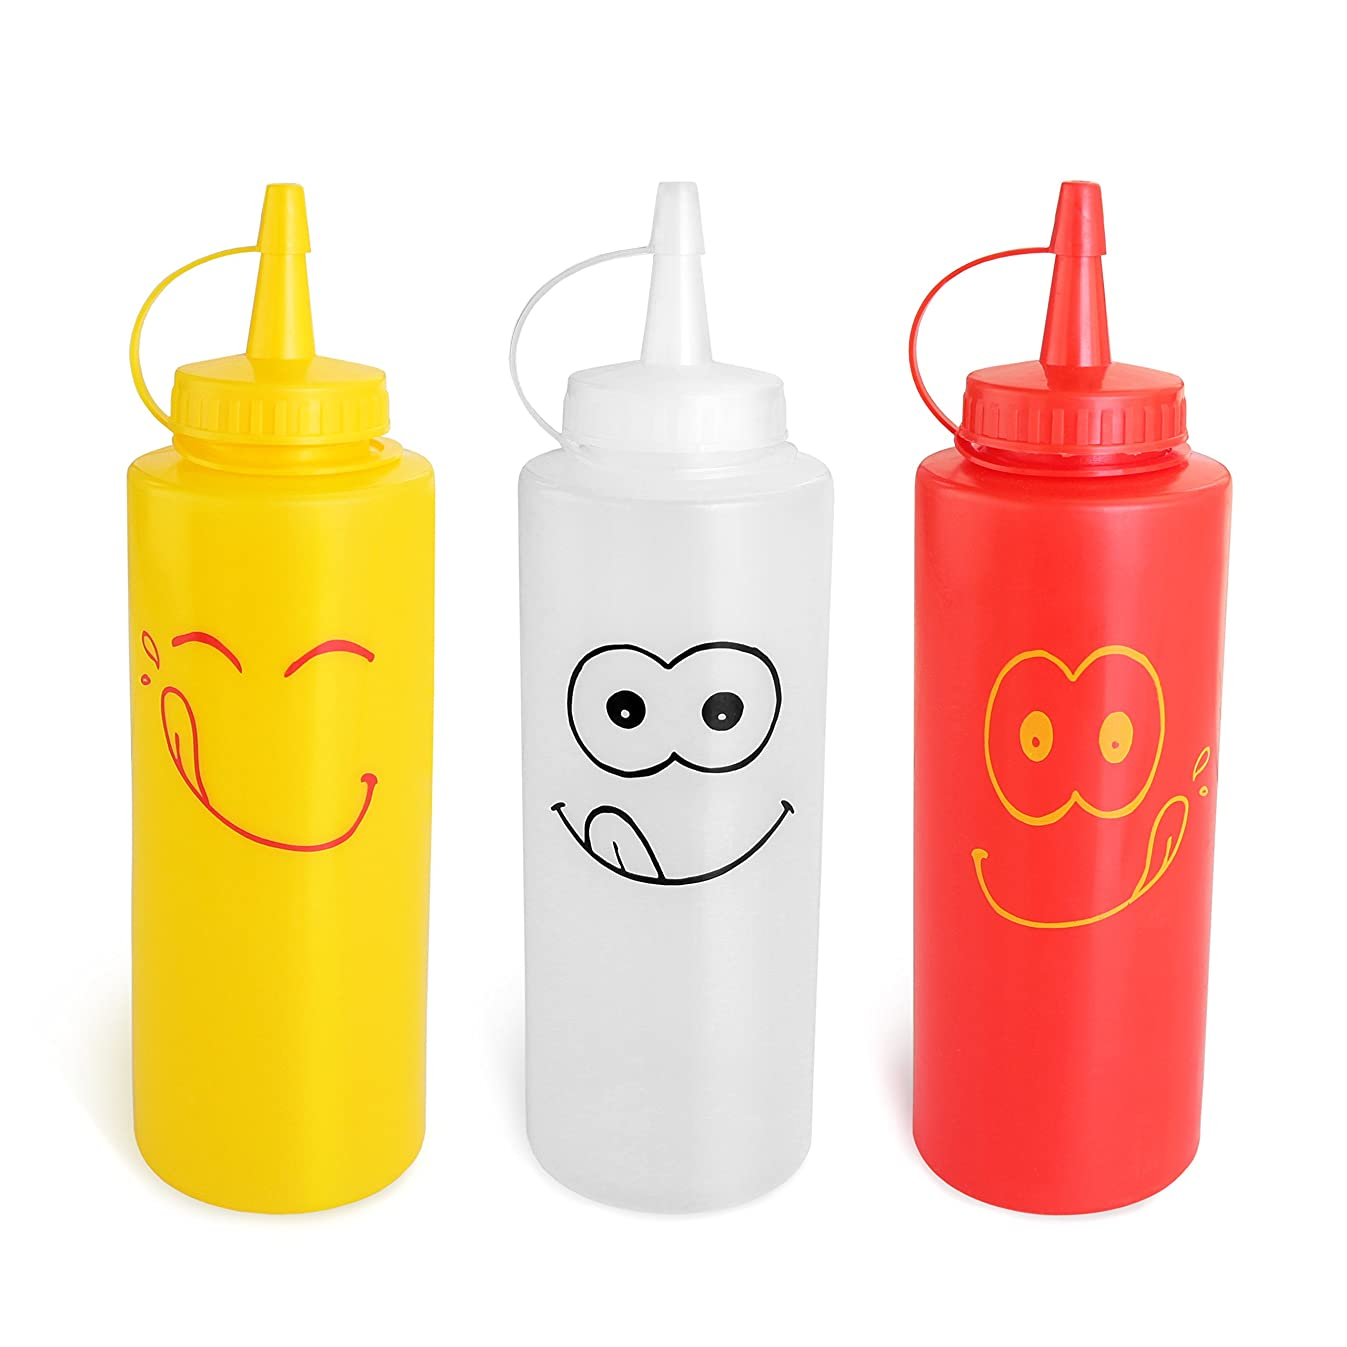 New Star Foodservice 28560 Smiley Faces Squeeze Bottle Set, Plastic, Red, Yellow, and Clear, 12 oz